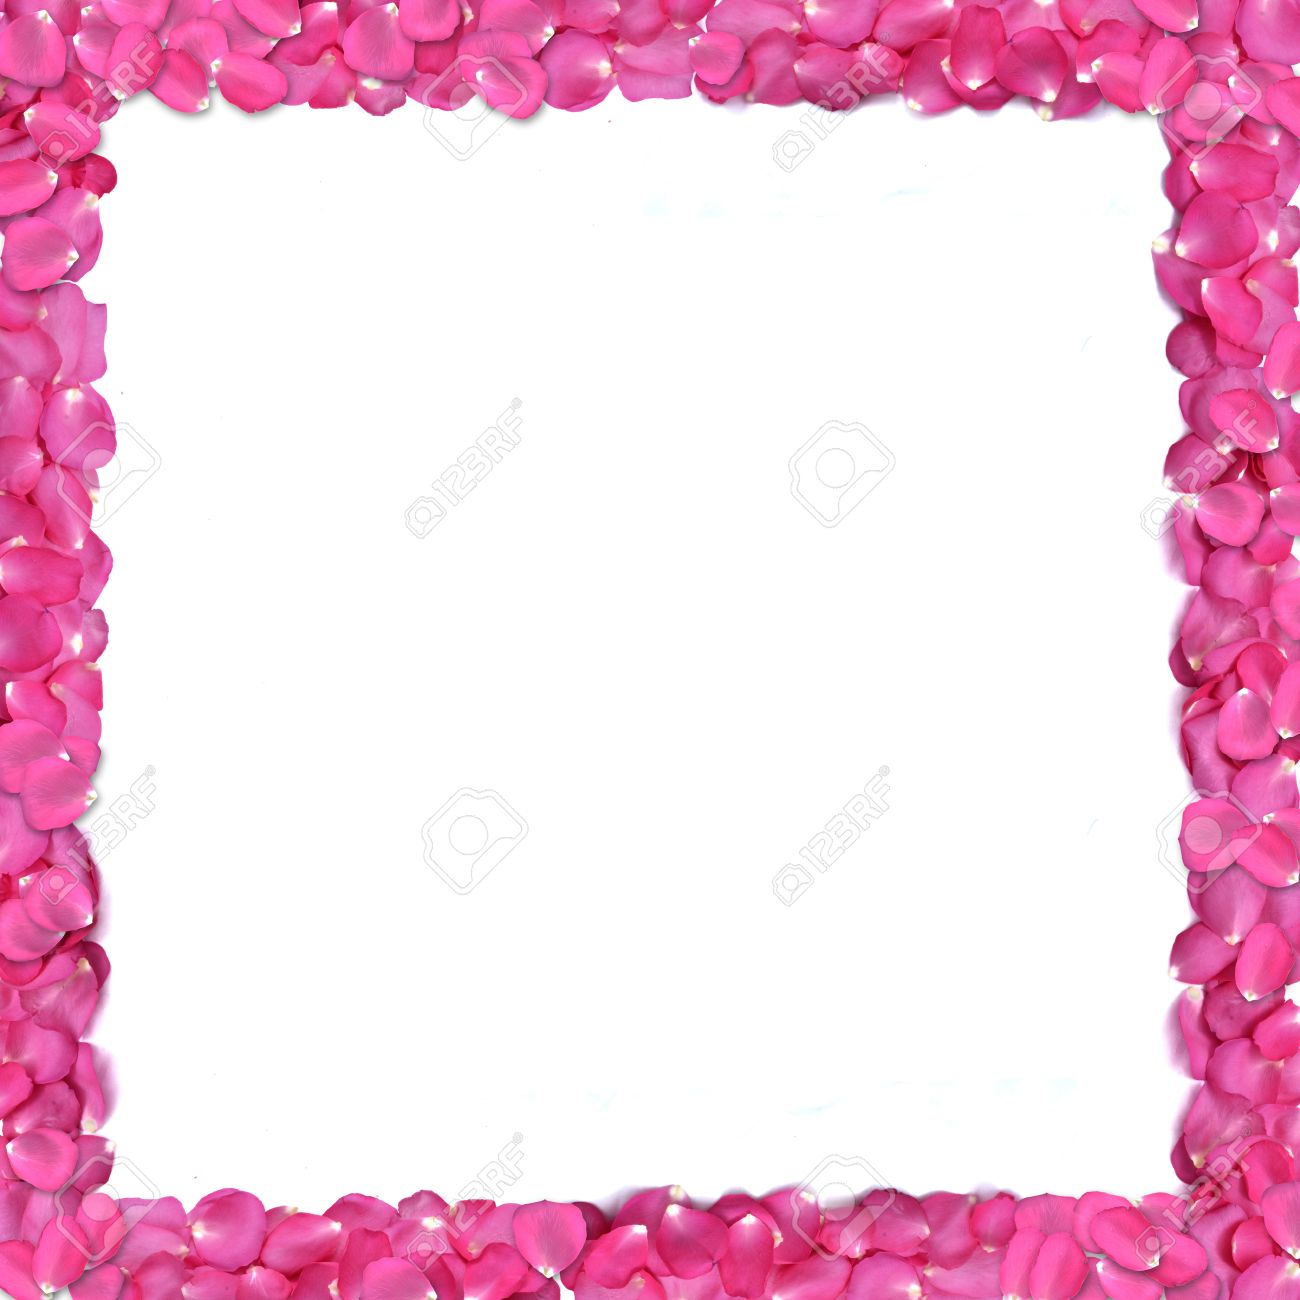 Square shape frame from rose petals on white background. Stock Photo - 12236458